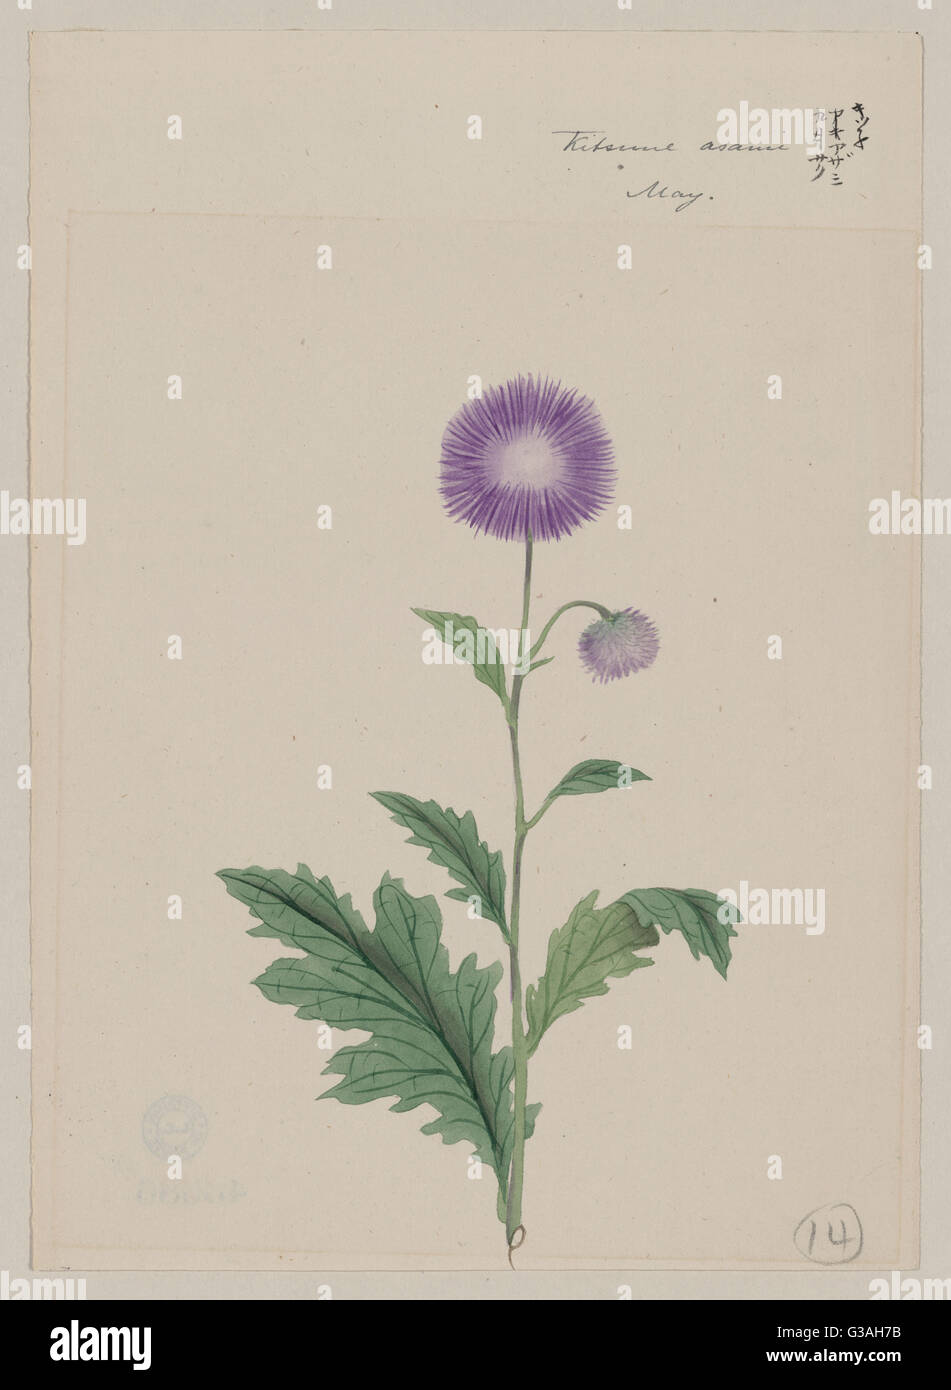 Kitsune azami - May. Drawing shows stalk with purple blossom and leaves of a Japanese plumed thistle. Date 187-. - Stock Image